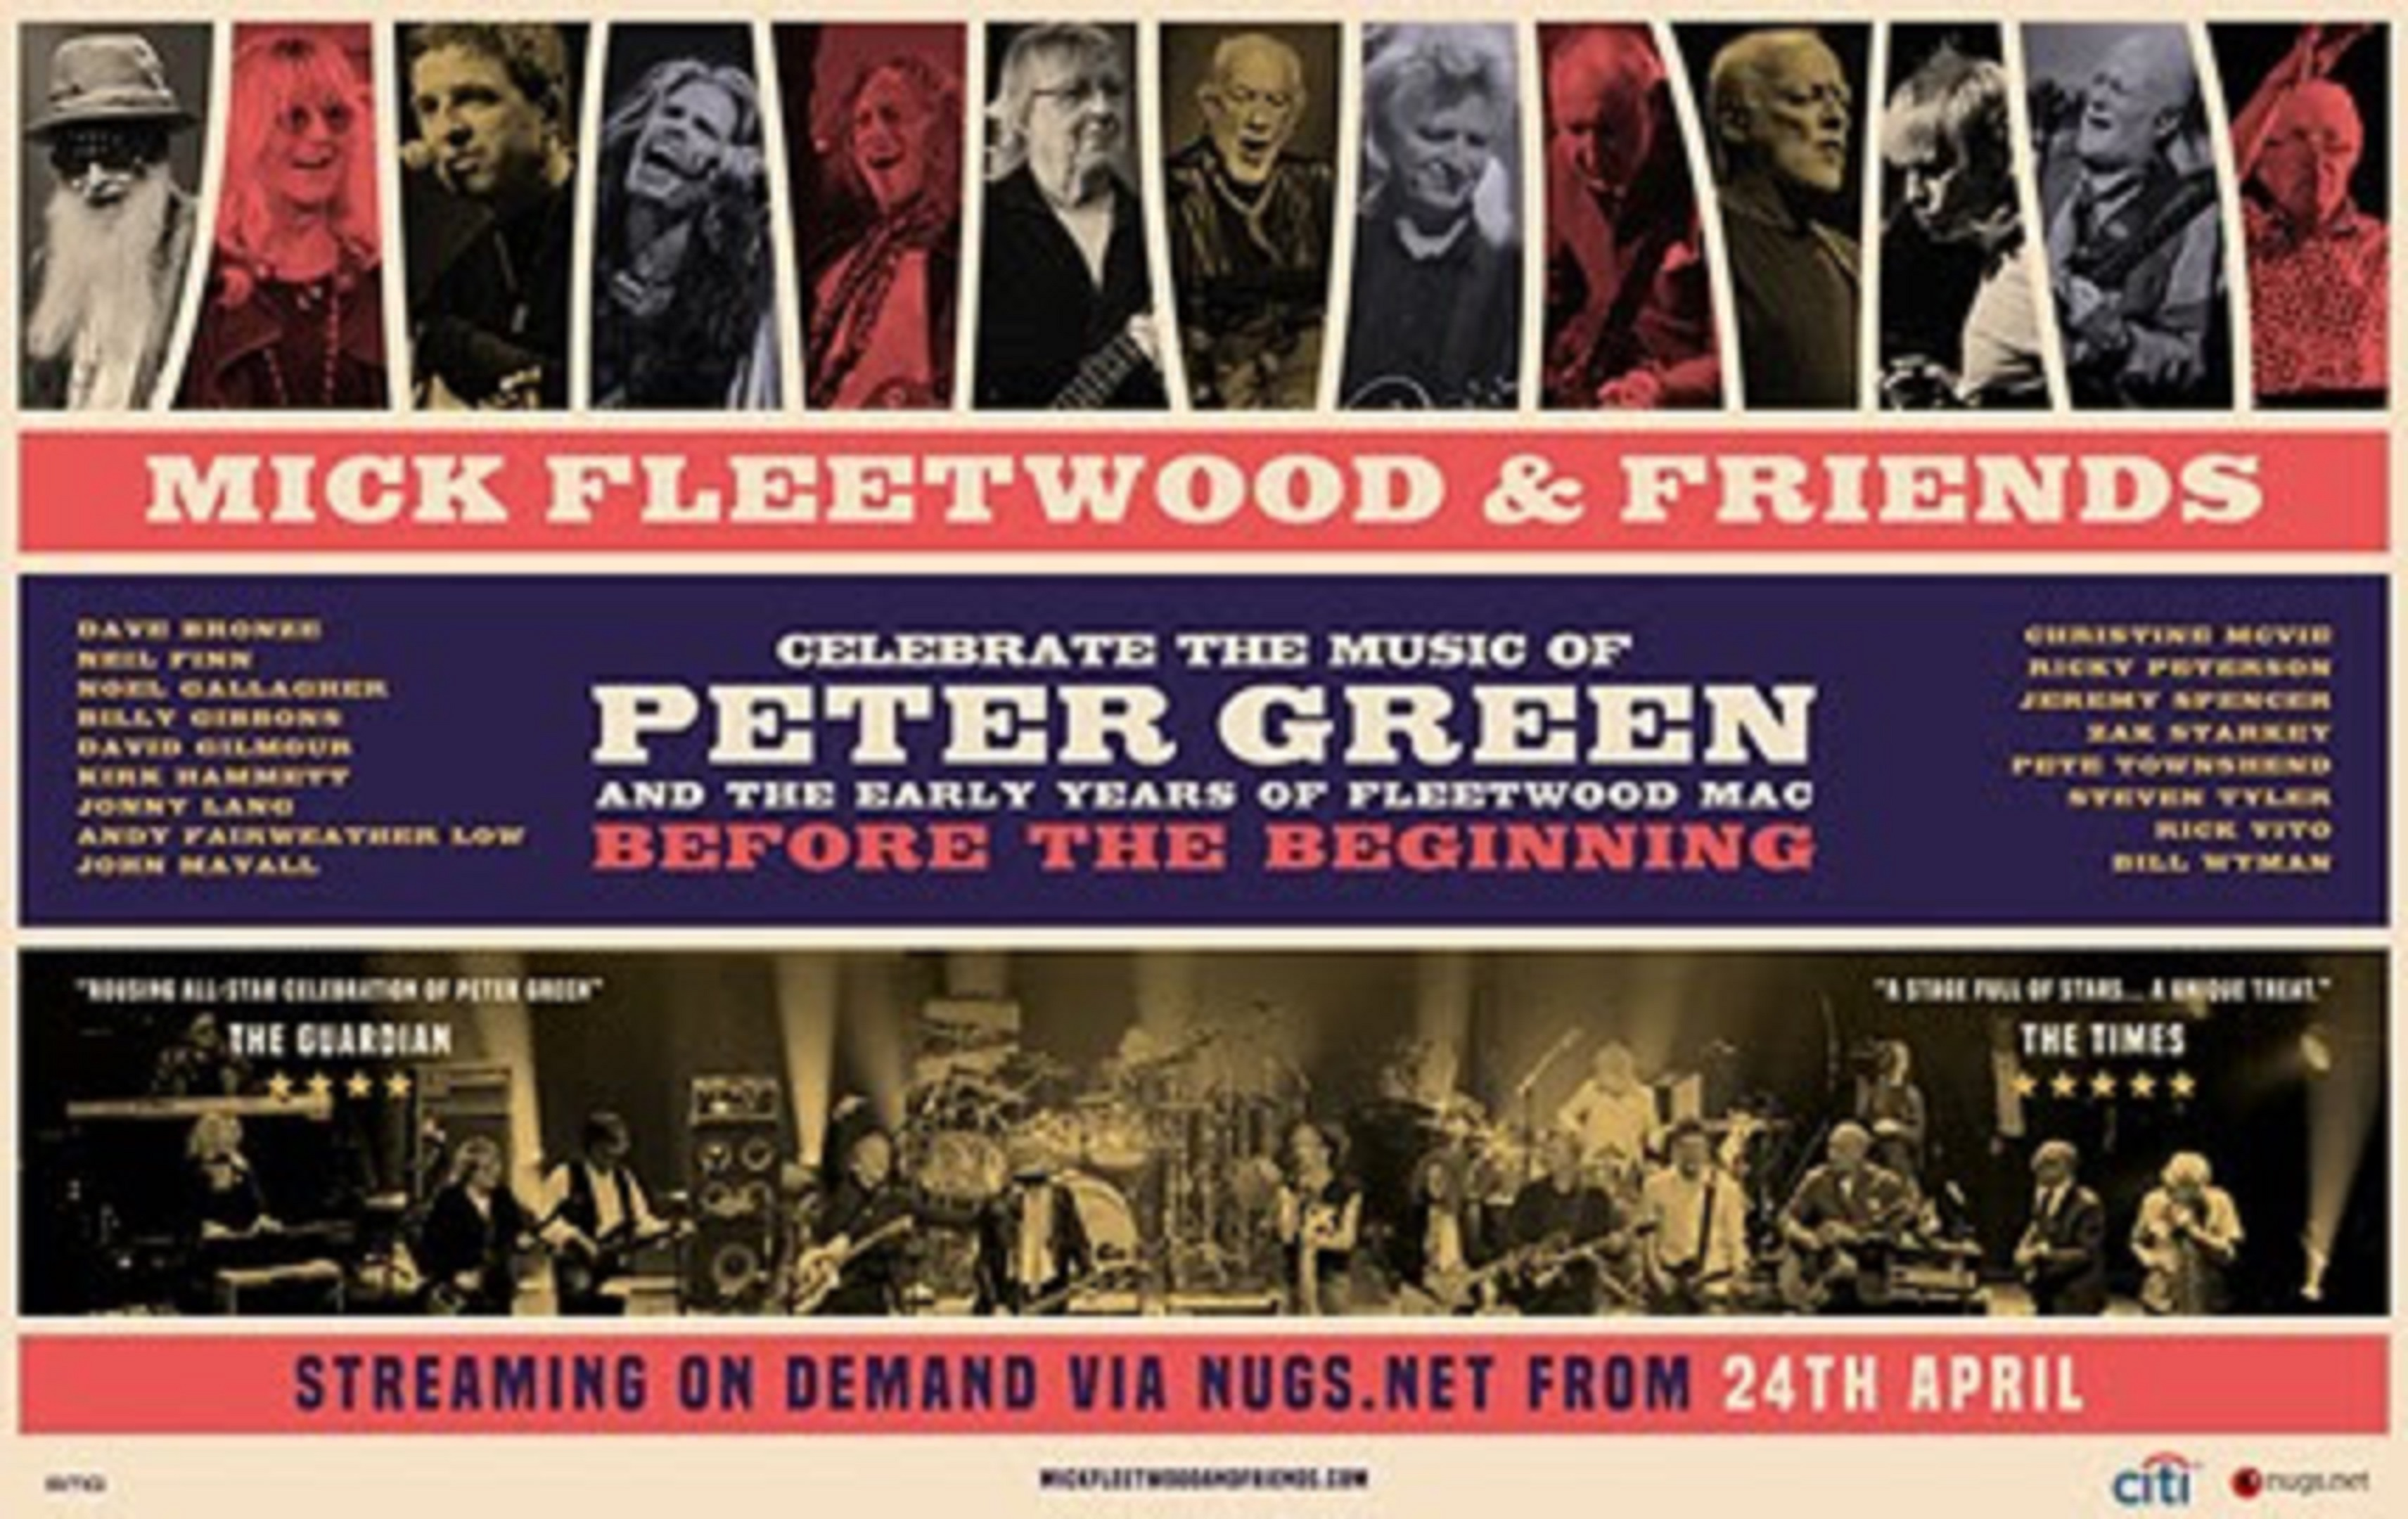 MICK FLEETWOOD & Friends Celebrate the Music of PETER GREEN - Streaming On Demand Event Announced